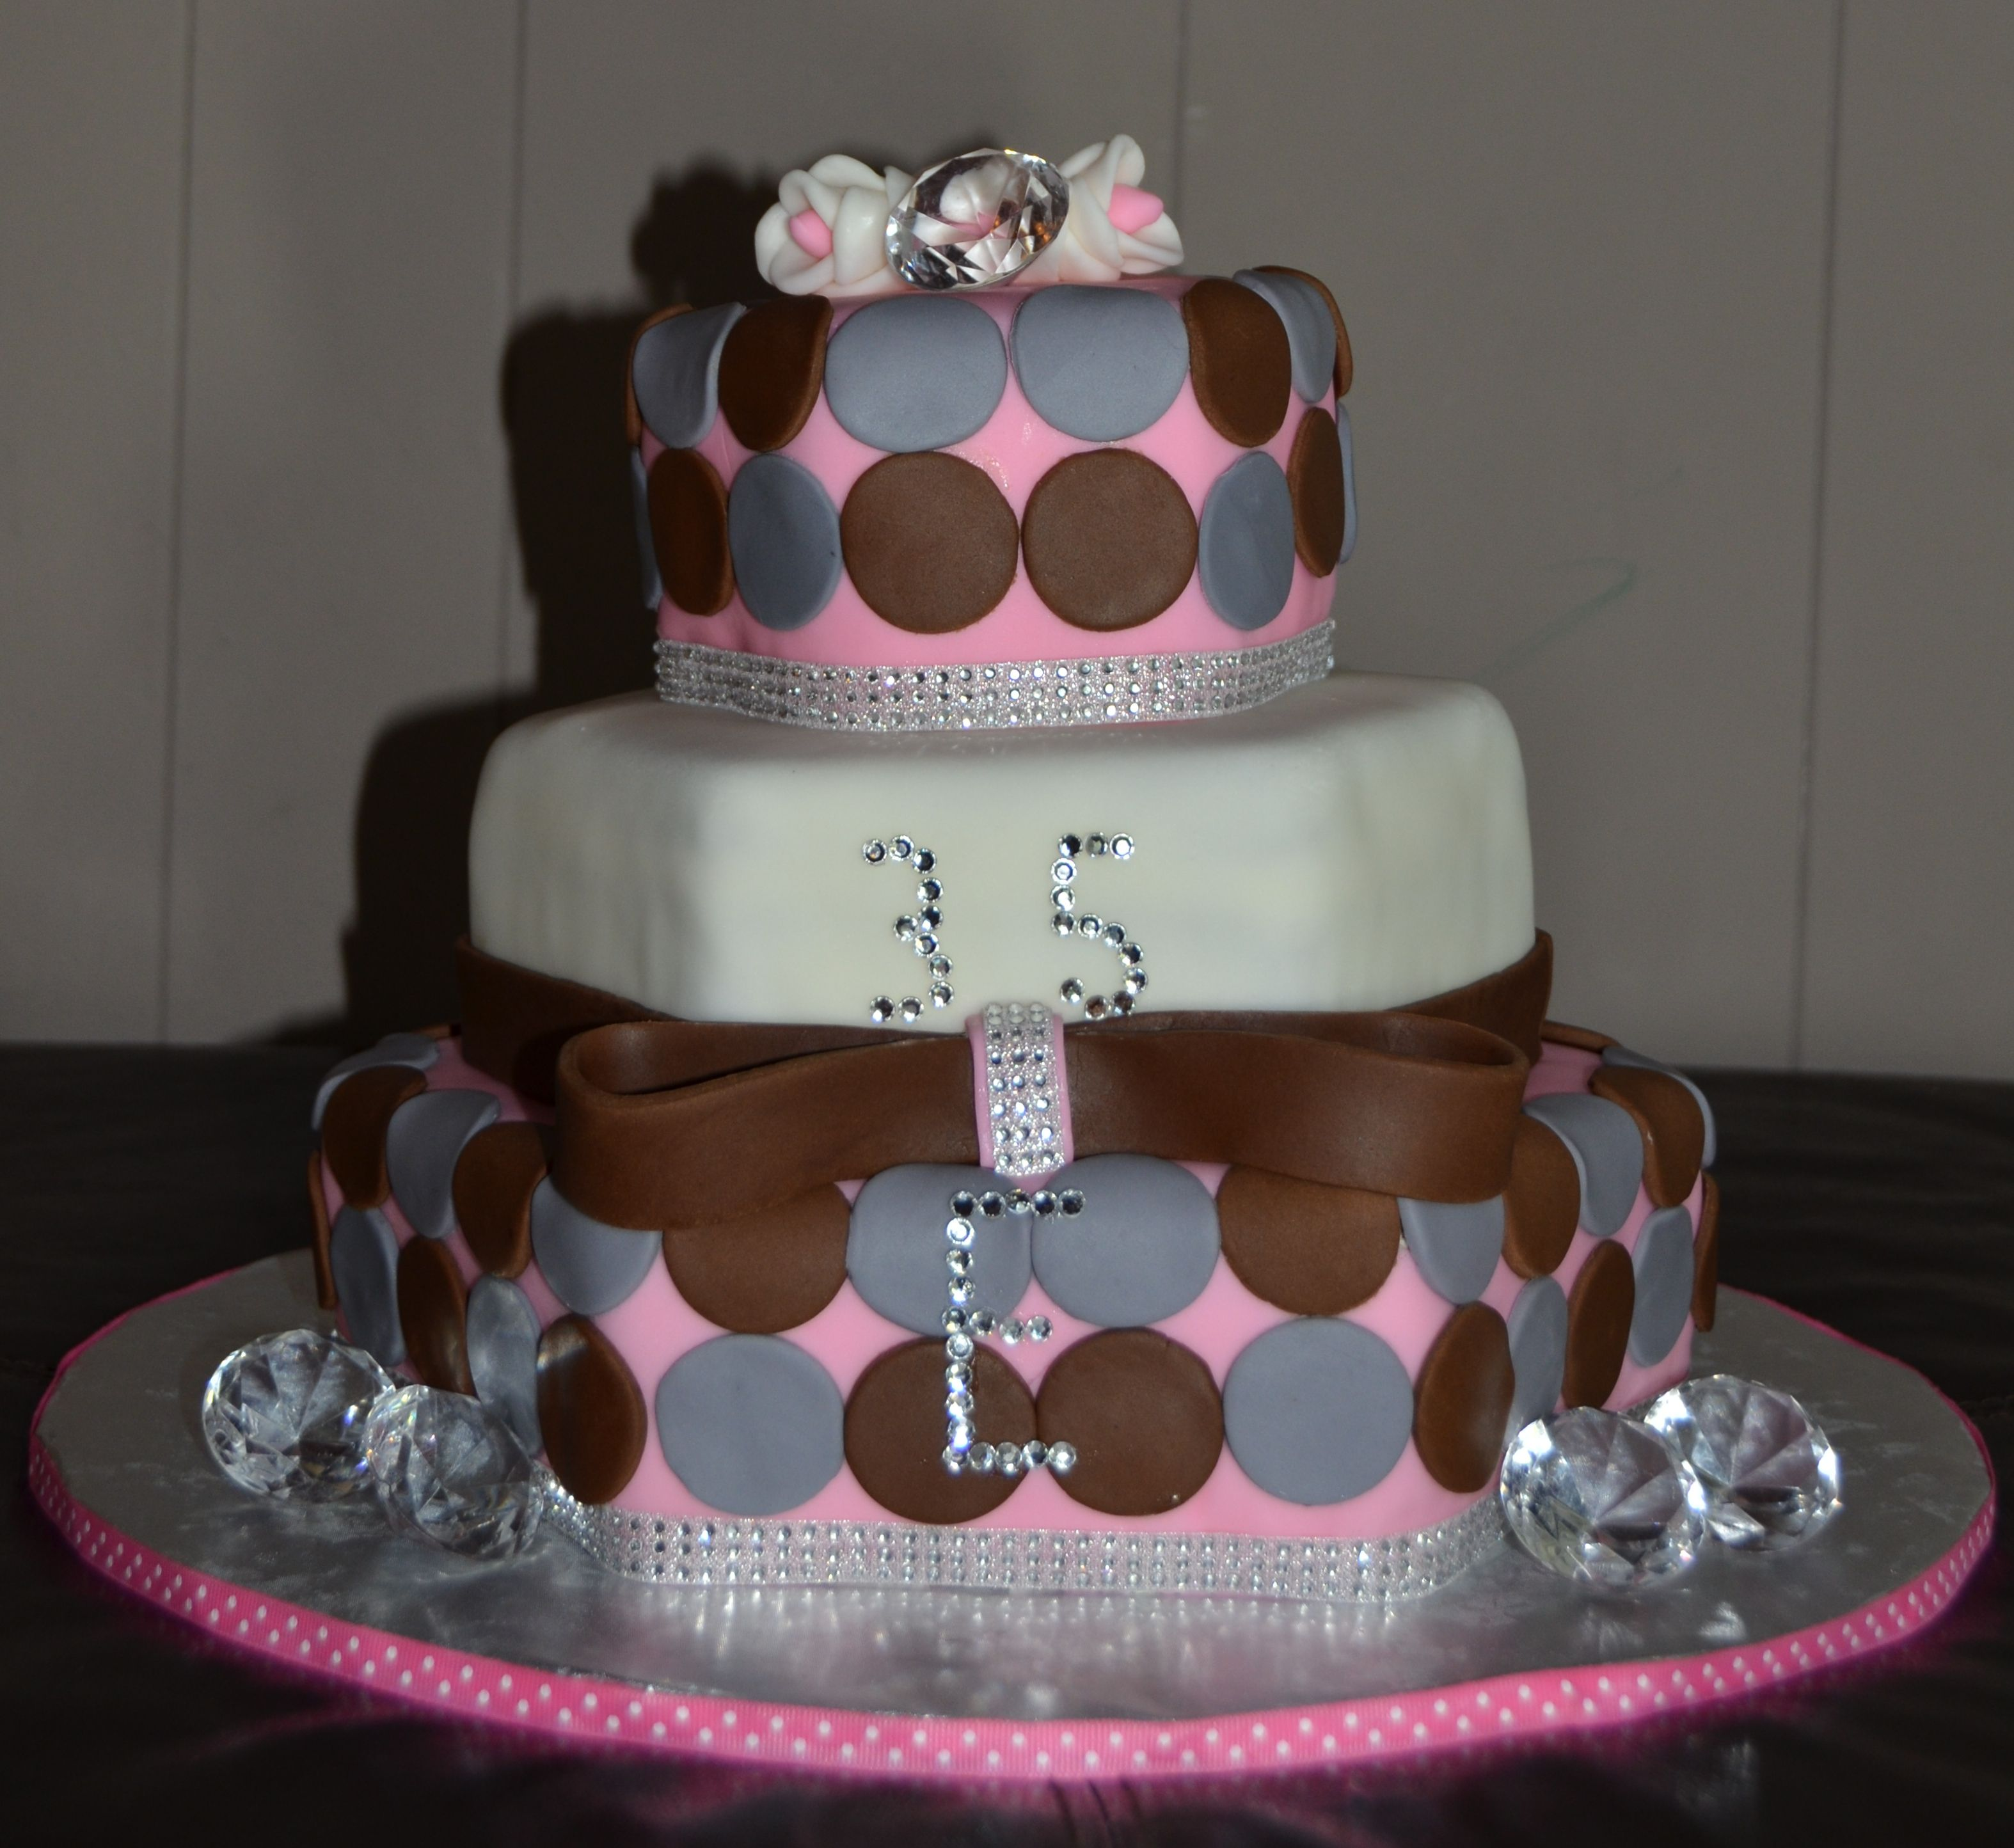 35th Birthday Cake With Diamond Accents Designs.